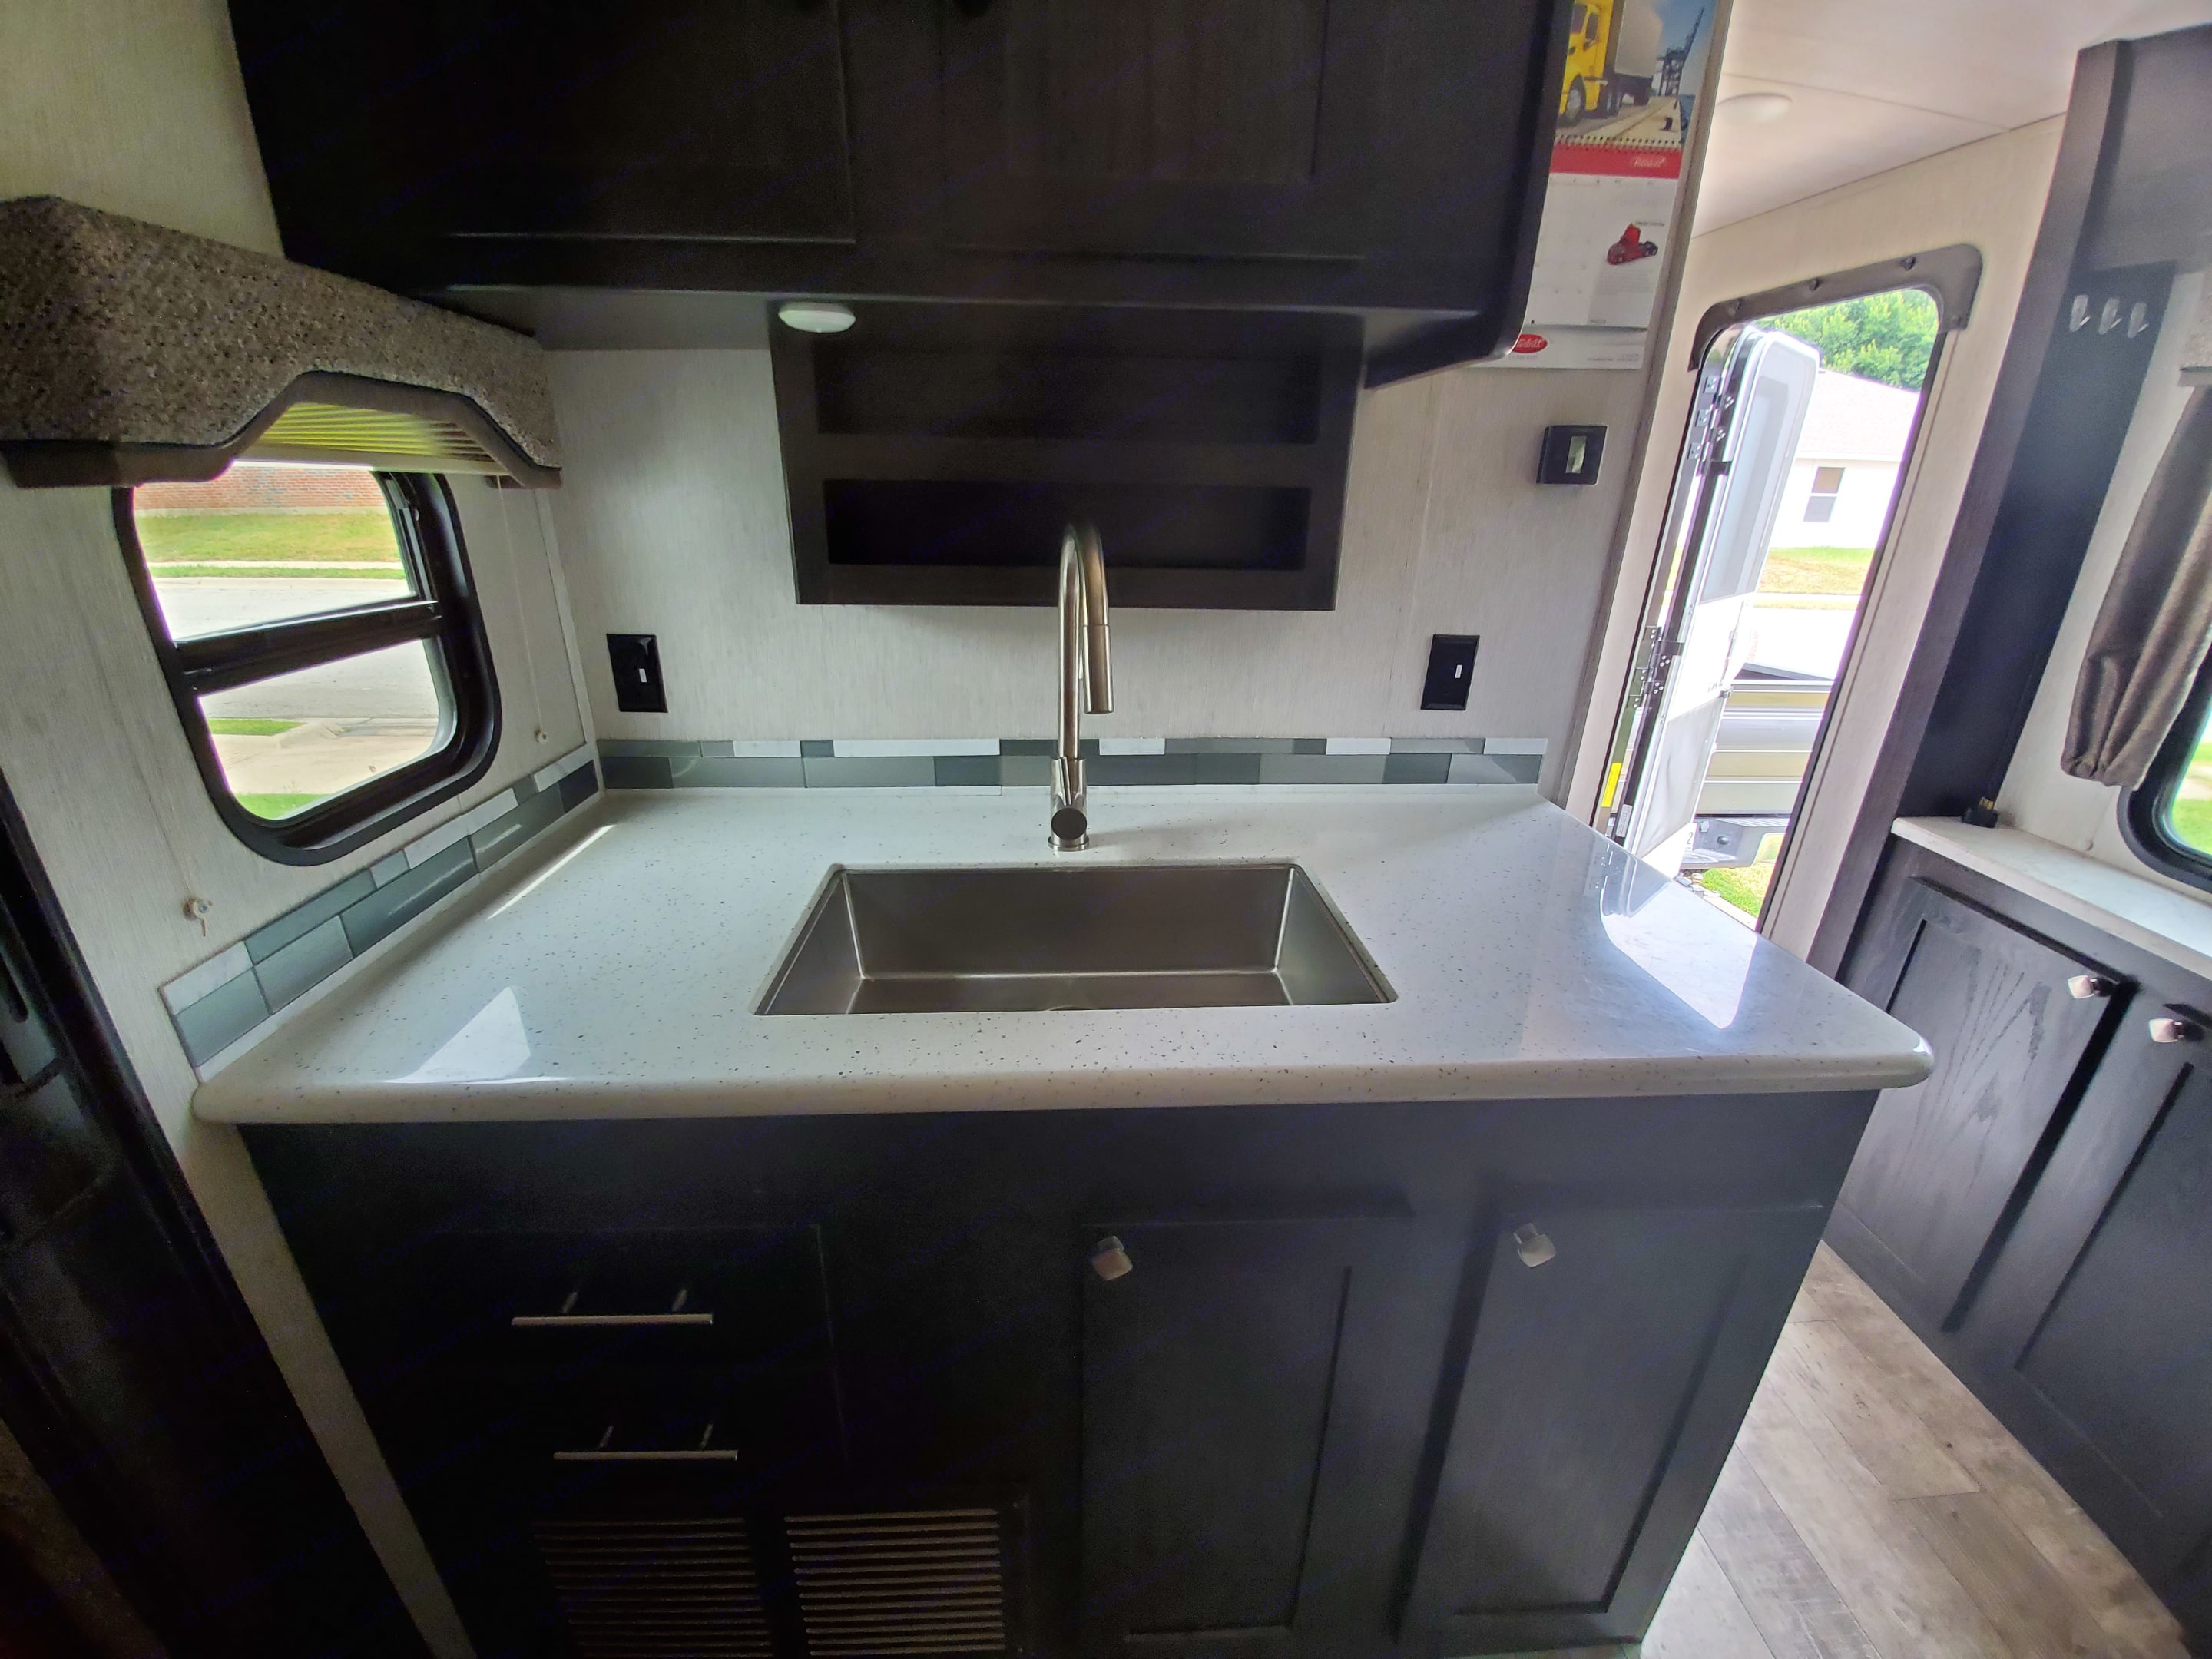 stainless farm style sink. Heartland North Trail 32RETS 2018